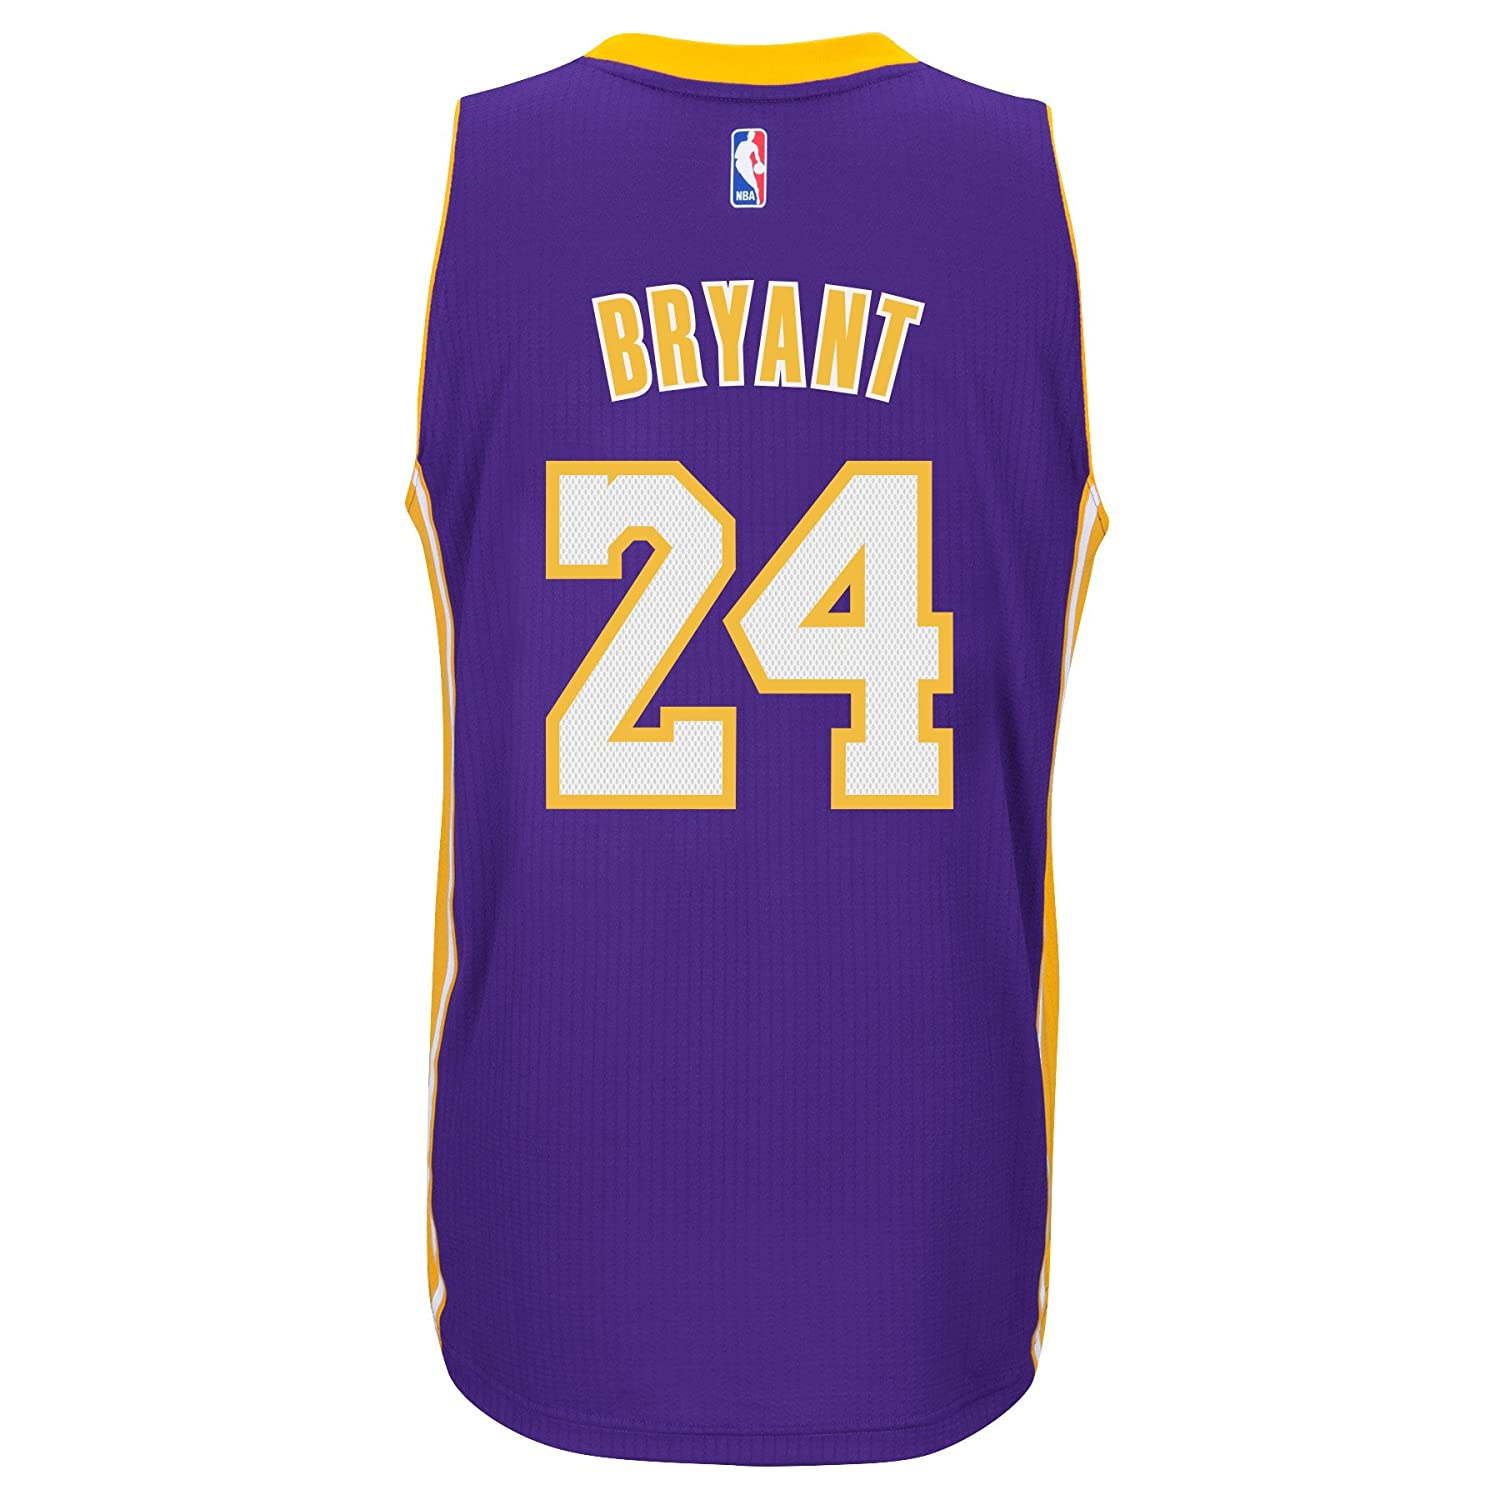 30305a06287 Amazon.com   ADIDAS Men s NBA Los Angeles Lakers Kobe Bryant Purple   Gold  Jersey (Large)   Sports   Outdoors